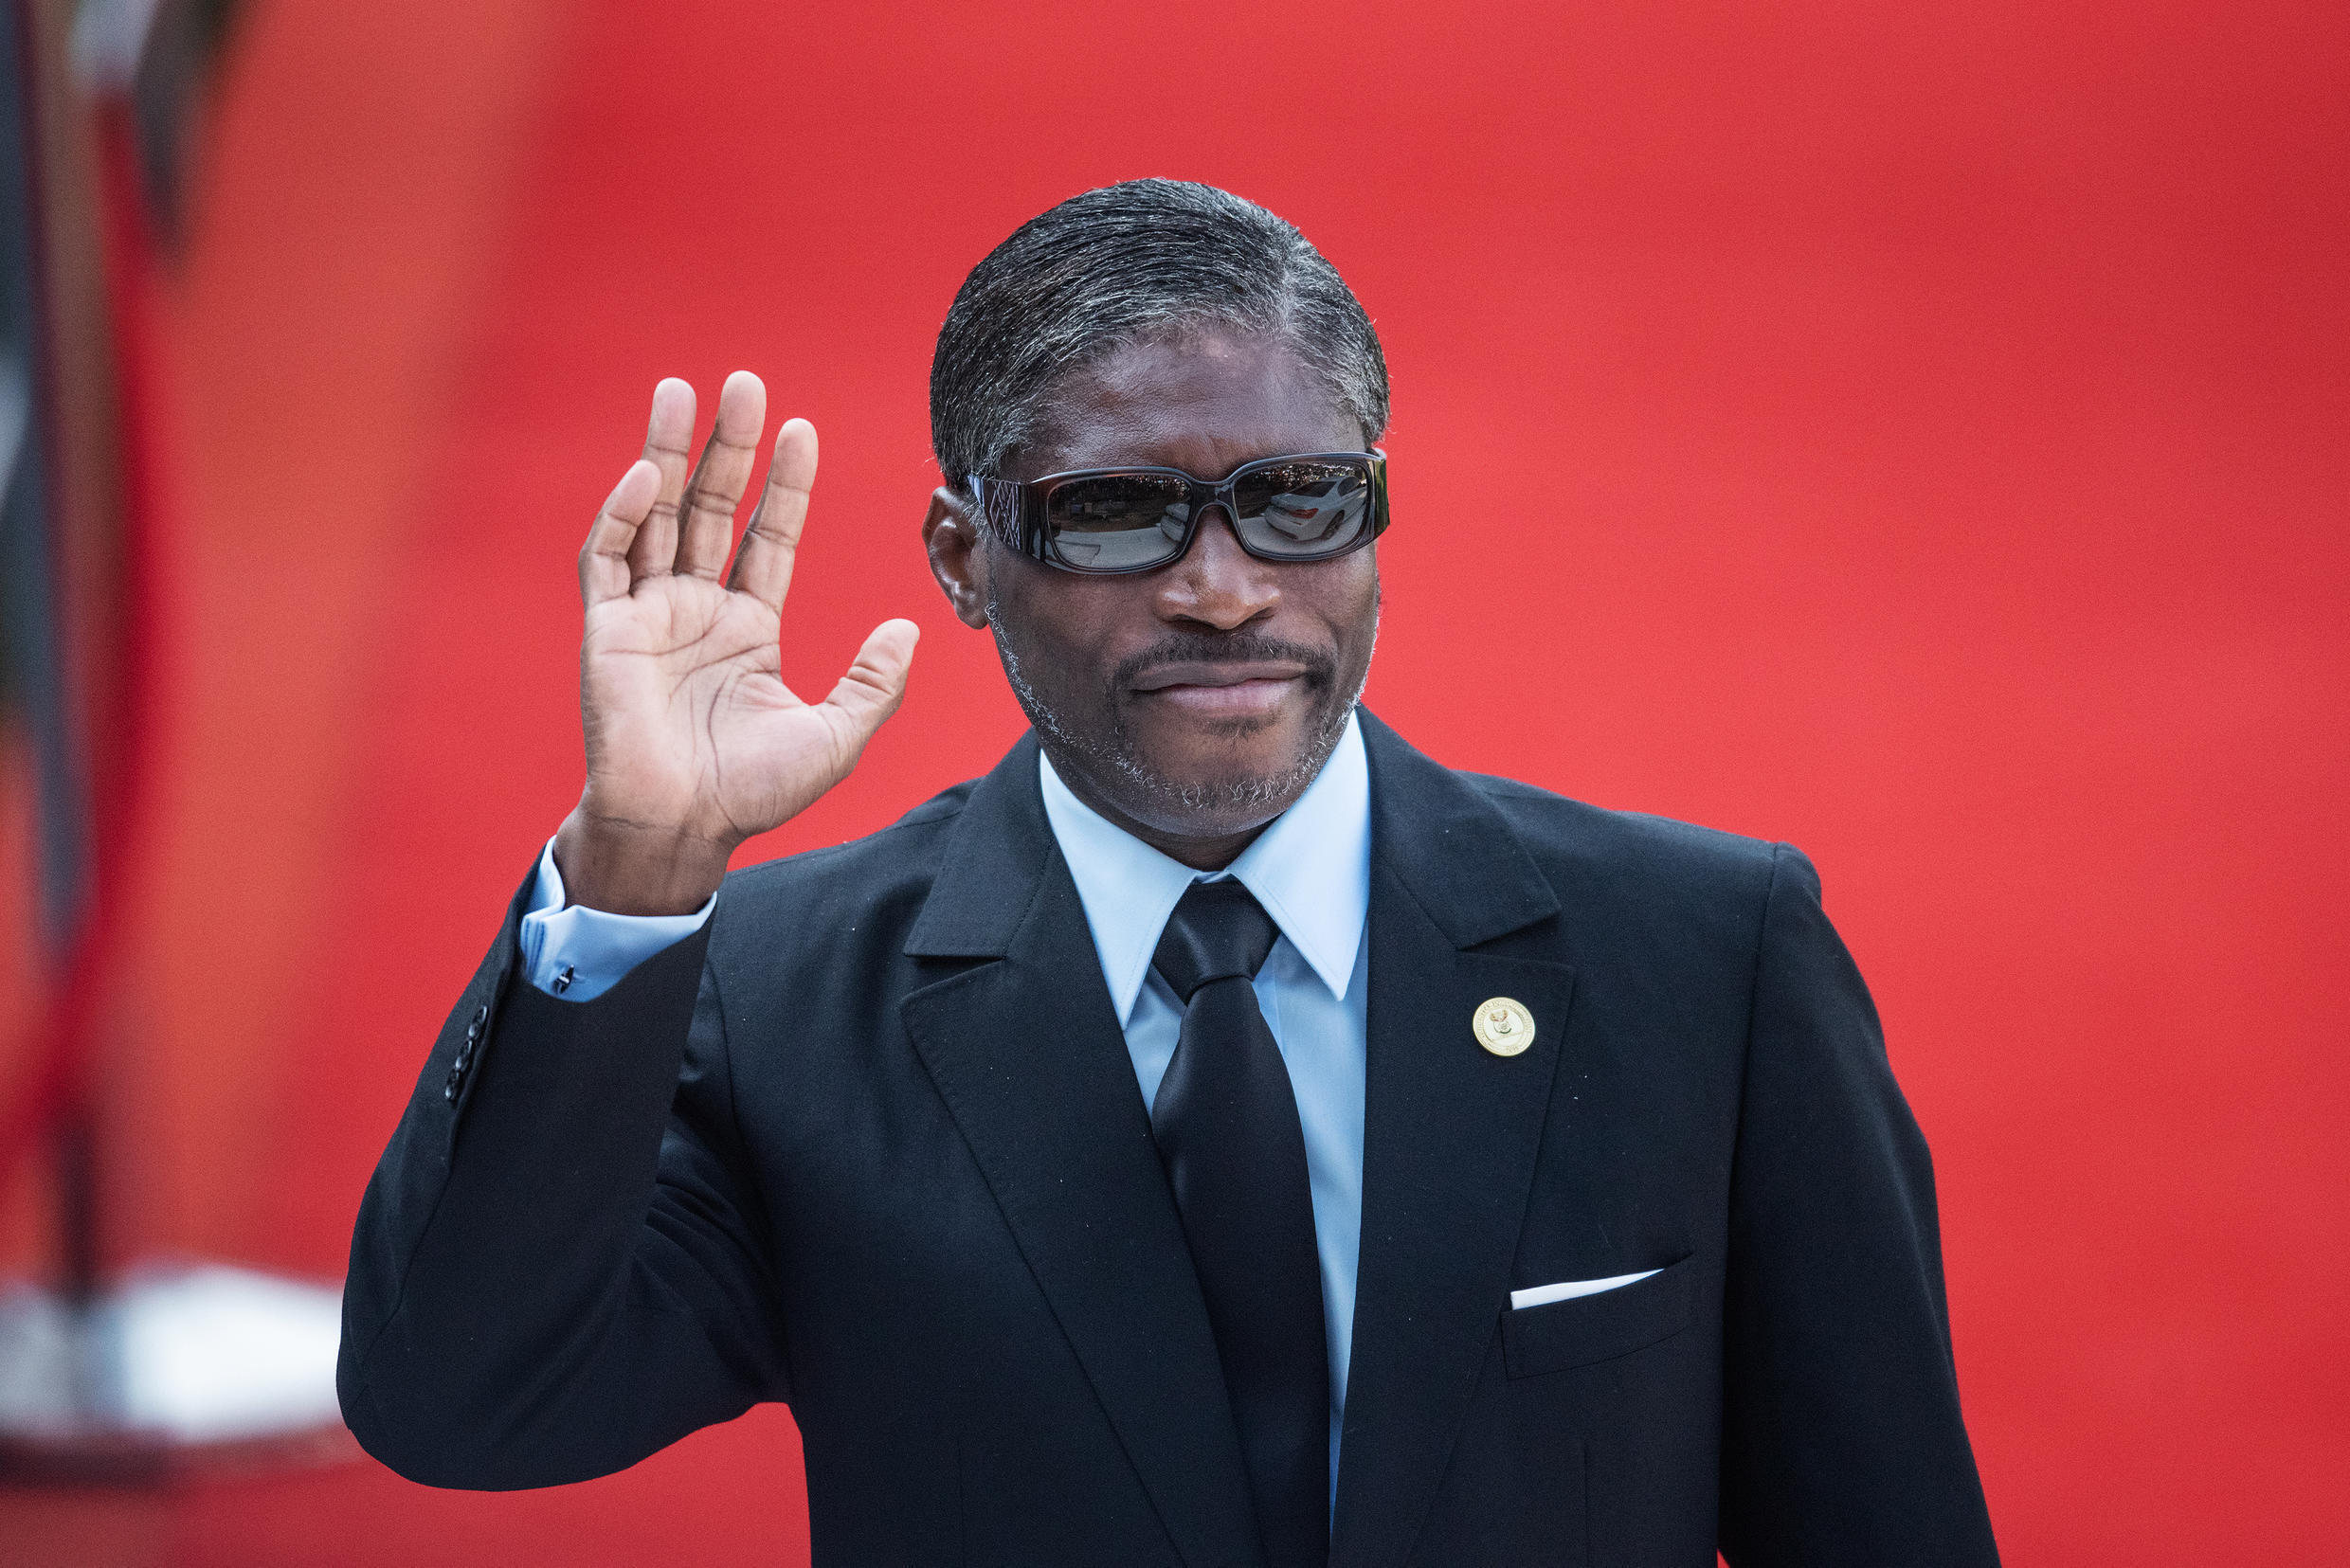 French prosecutors accused Teodorin Obiang of plundering tens of millions of dollars from the oil- and timber-rich African nation's coffers to fund his jetset lifestyle in France